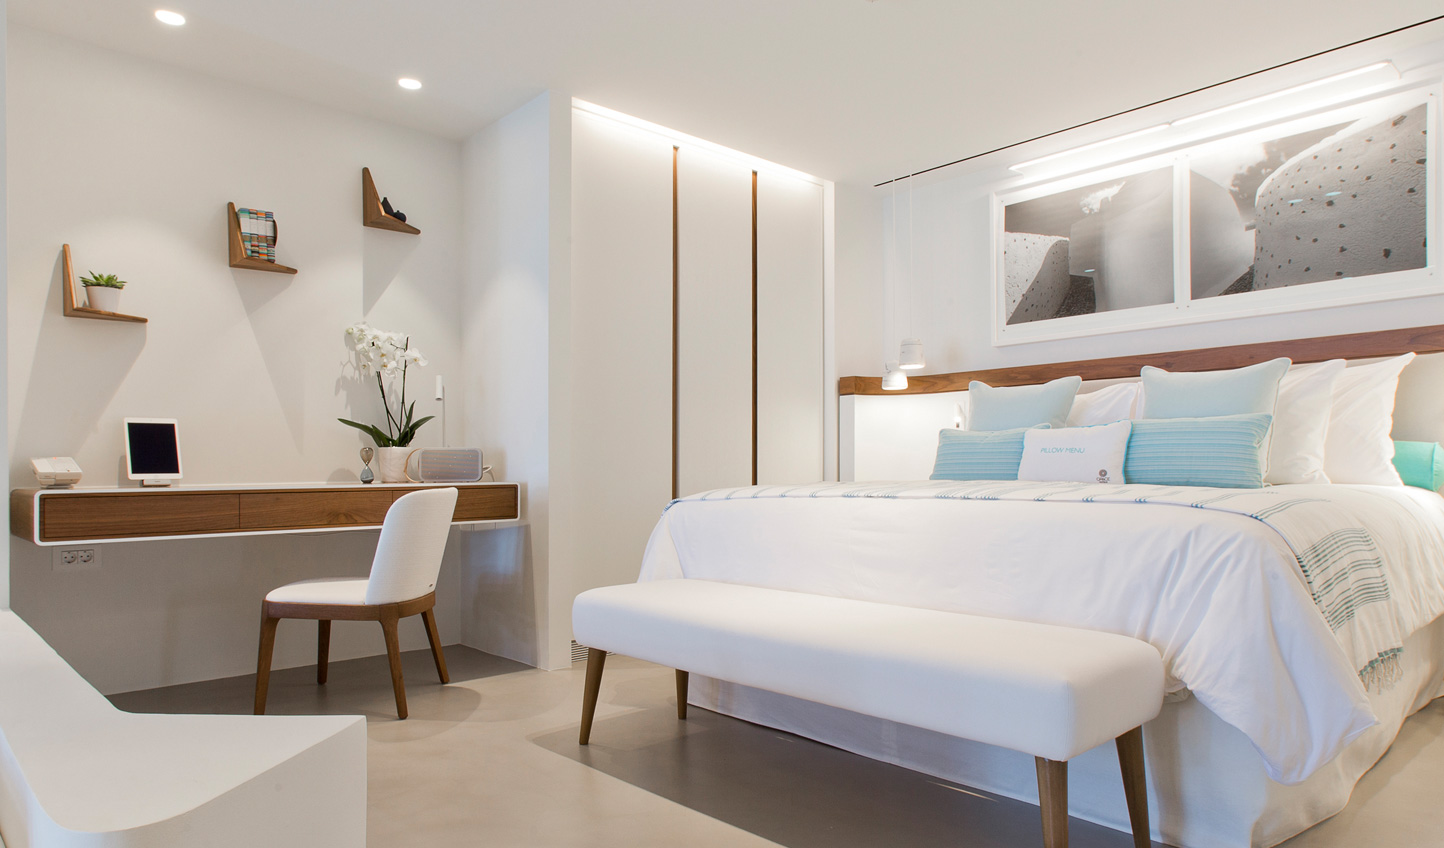 Clean lines and a white and blue colour scheme create a relaxed atmosphere